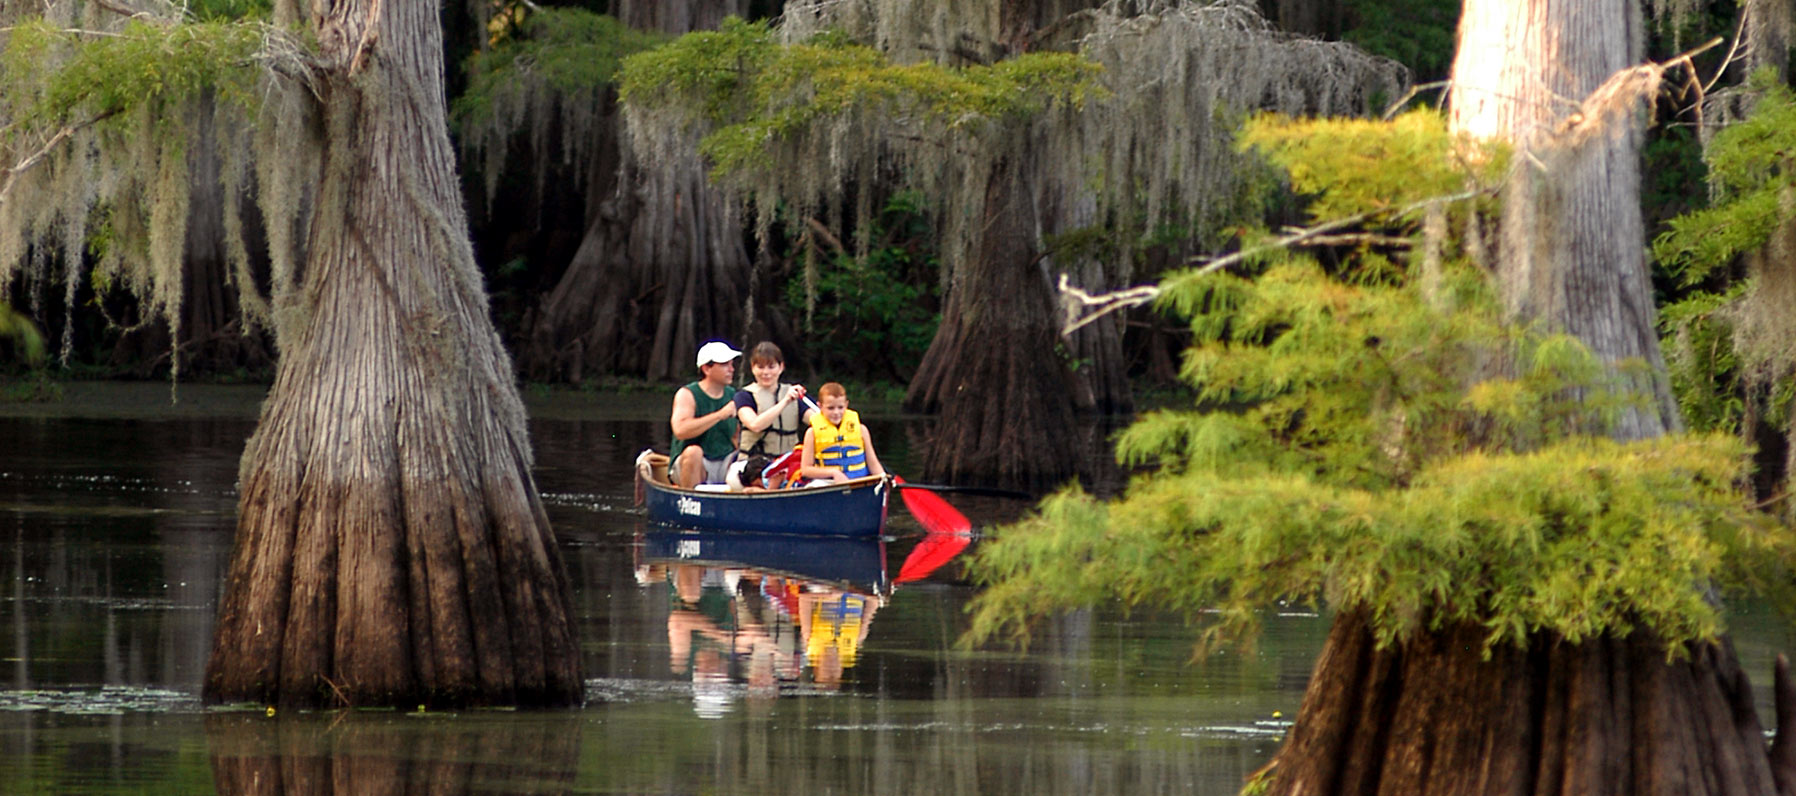 Paddling on Caddo Lake.